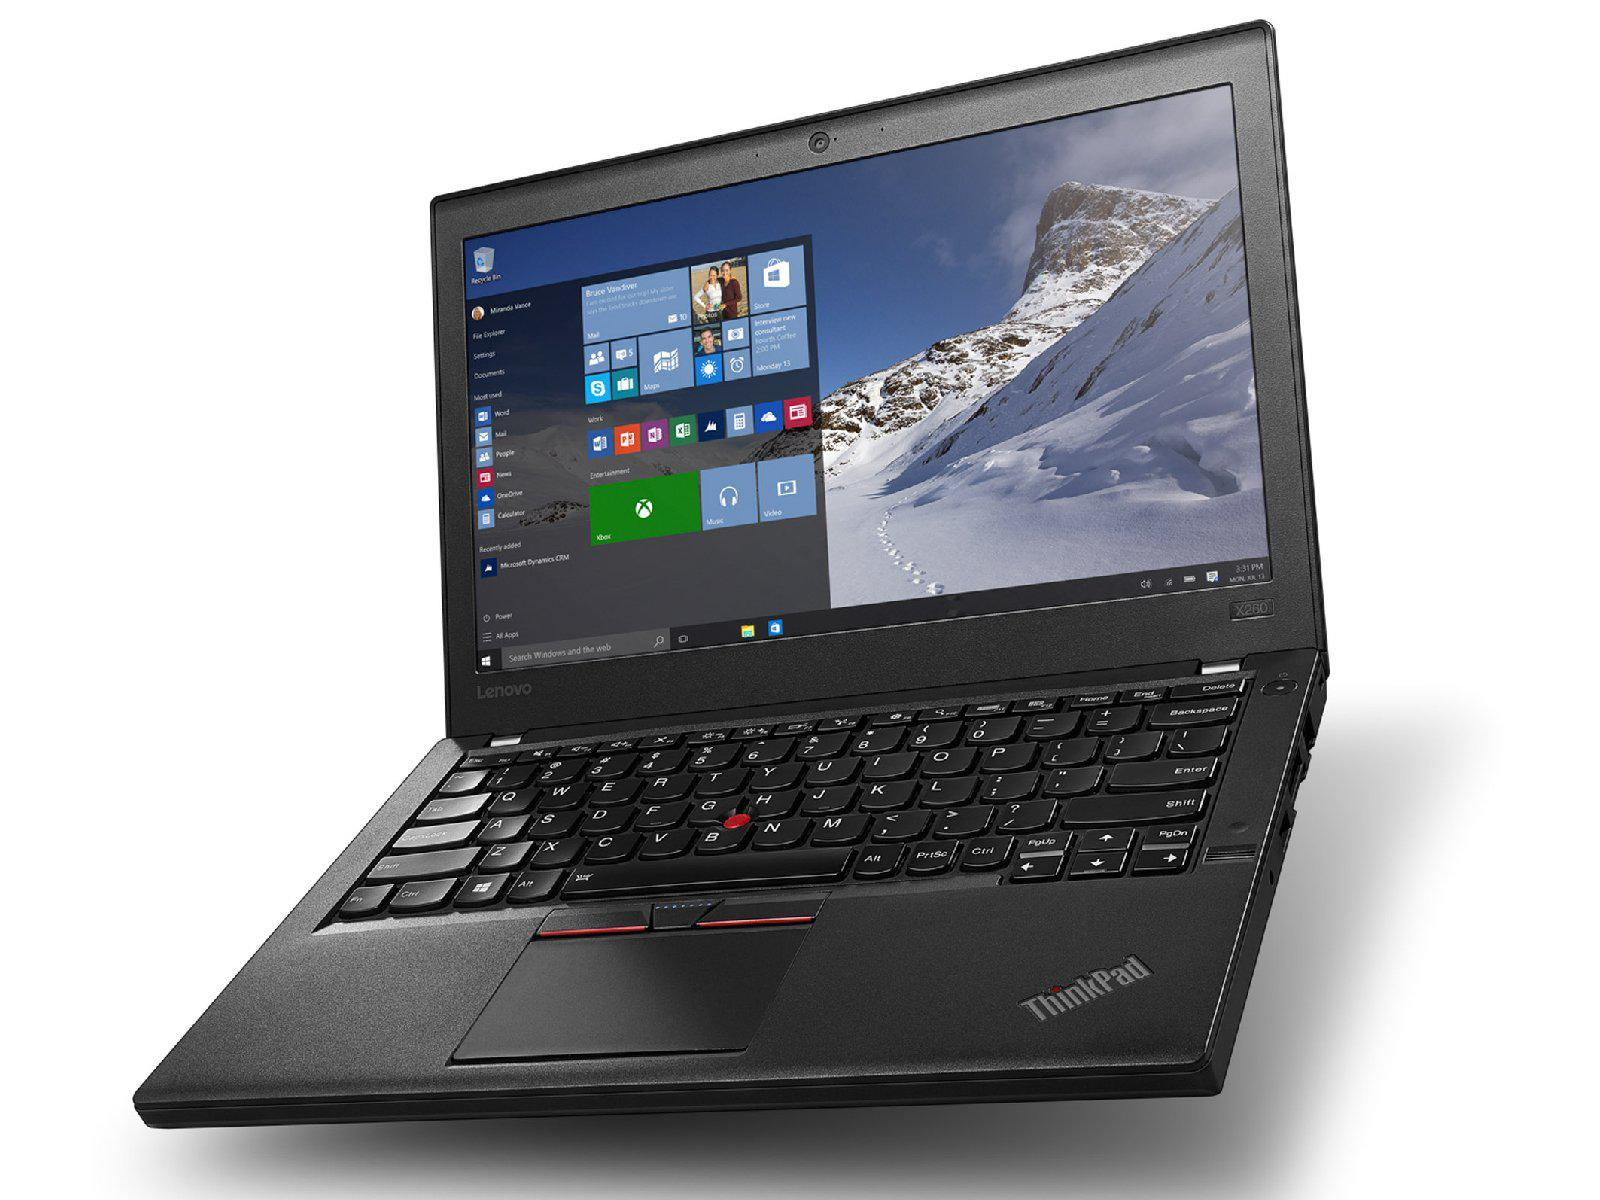 "Lenovo Thinkpad X260 12.5"" Laptop Intel Core i5 2.4Ghz, Windows 10 Pro, Refurbished"